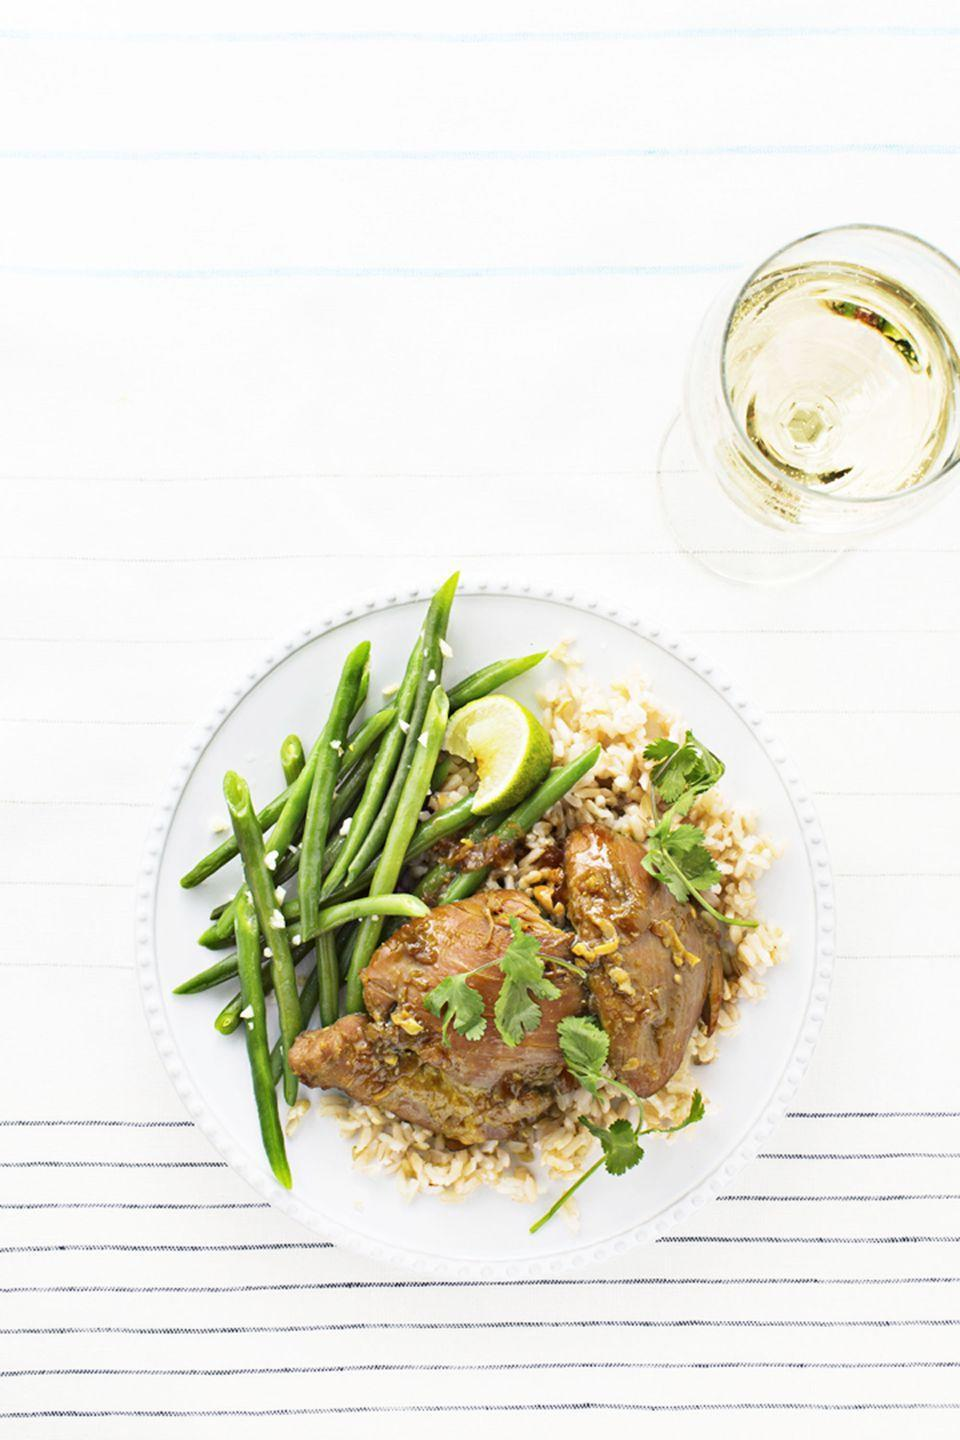 "<p>Don't skip on <a href=""https://www.goodhousekeeping.com/food-recipes/cooking/g4816/how-to-cook-brown-rice/"" rel=""nofollow noopener"" target=""_blank"" data-ylk=""slk:the brown rice"" class=""link rapid-noclick-resp"">the brown rice</a>. You're going to want something to soak up all that garlicky, gingery goodness.</p><p><em><a href=""https://www.goodhousekeeping.com/food-recipes/a31836/chicken-adobo-over-gingery-rice-recipe-ghk0415/"" rel=""nofollow noopener"" target=""_blank"" data-ylk=""slk:Get the recipe for Chicken Adobo Over Gingery Rice »"" class=""link rapid-noclick-resp"">Get the recipe for Chicken Adobo Over Gingery Rice »</a></em></p>"